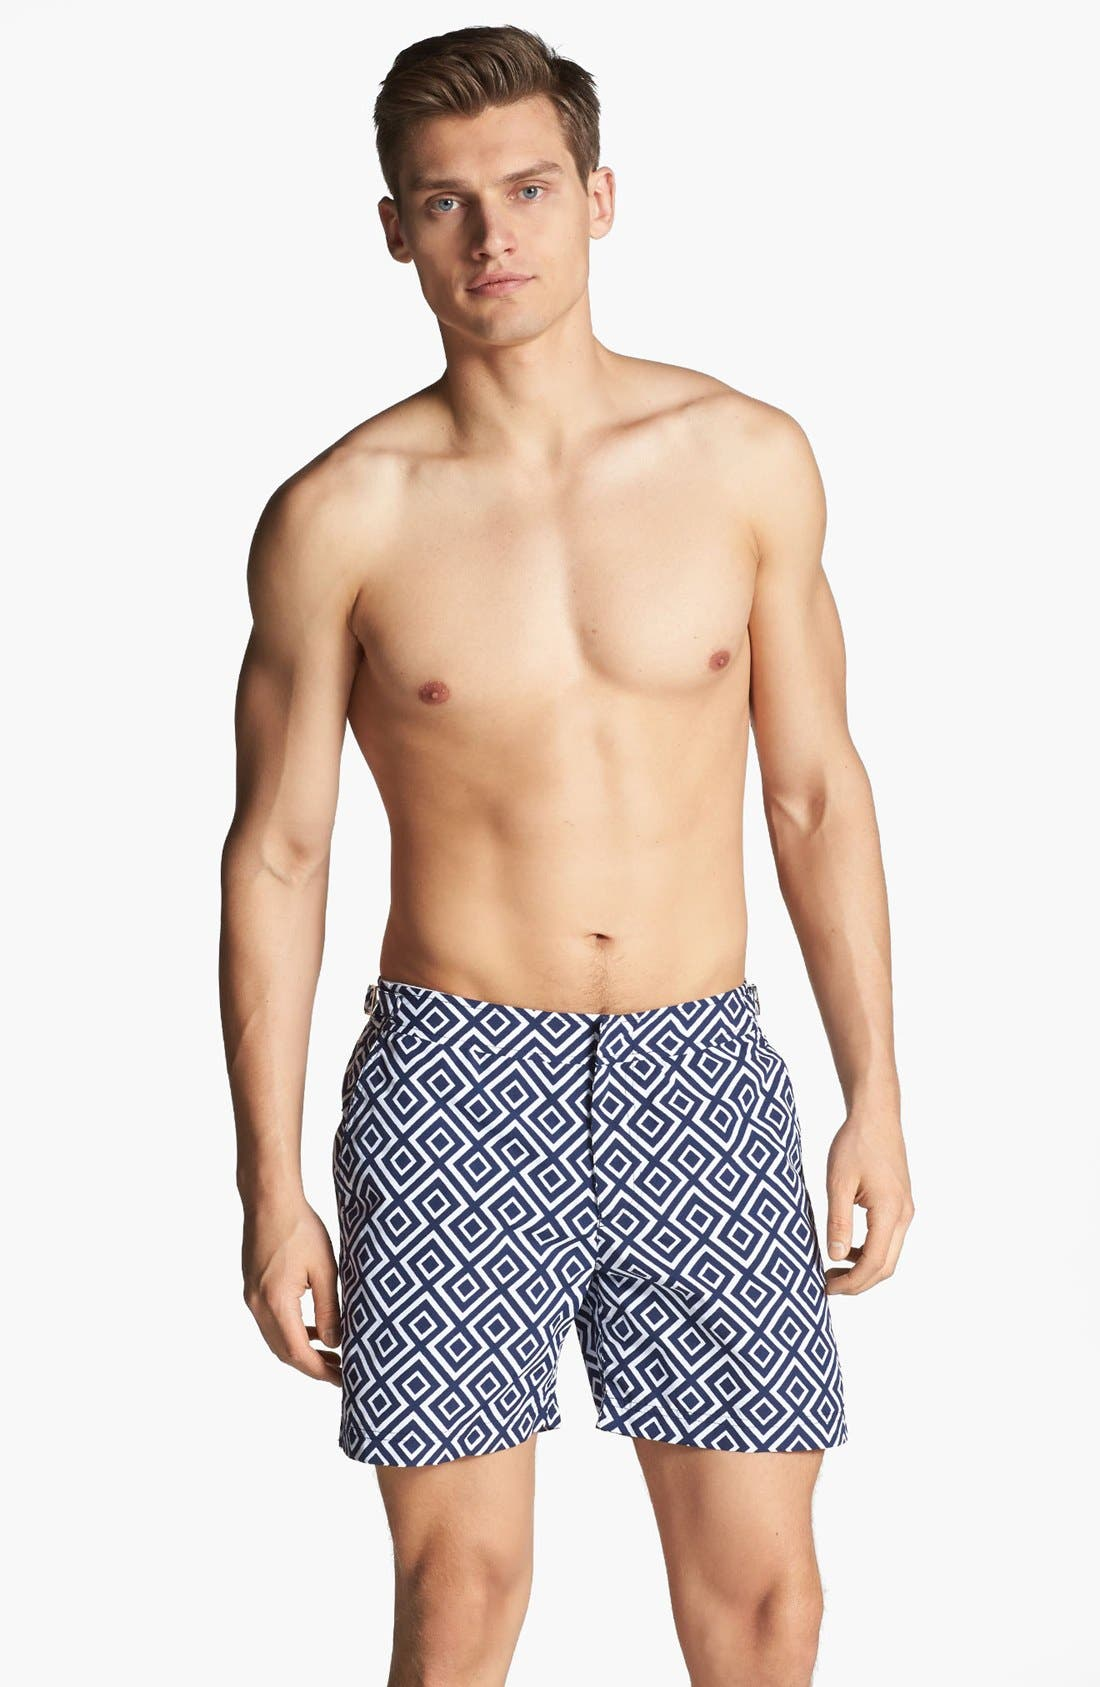 Alternate Image 1 Selected - Orlebar Brown 'Bulldog - La Fiorentina' Print Swim Trunks